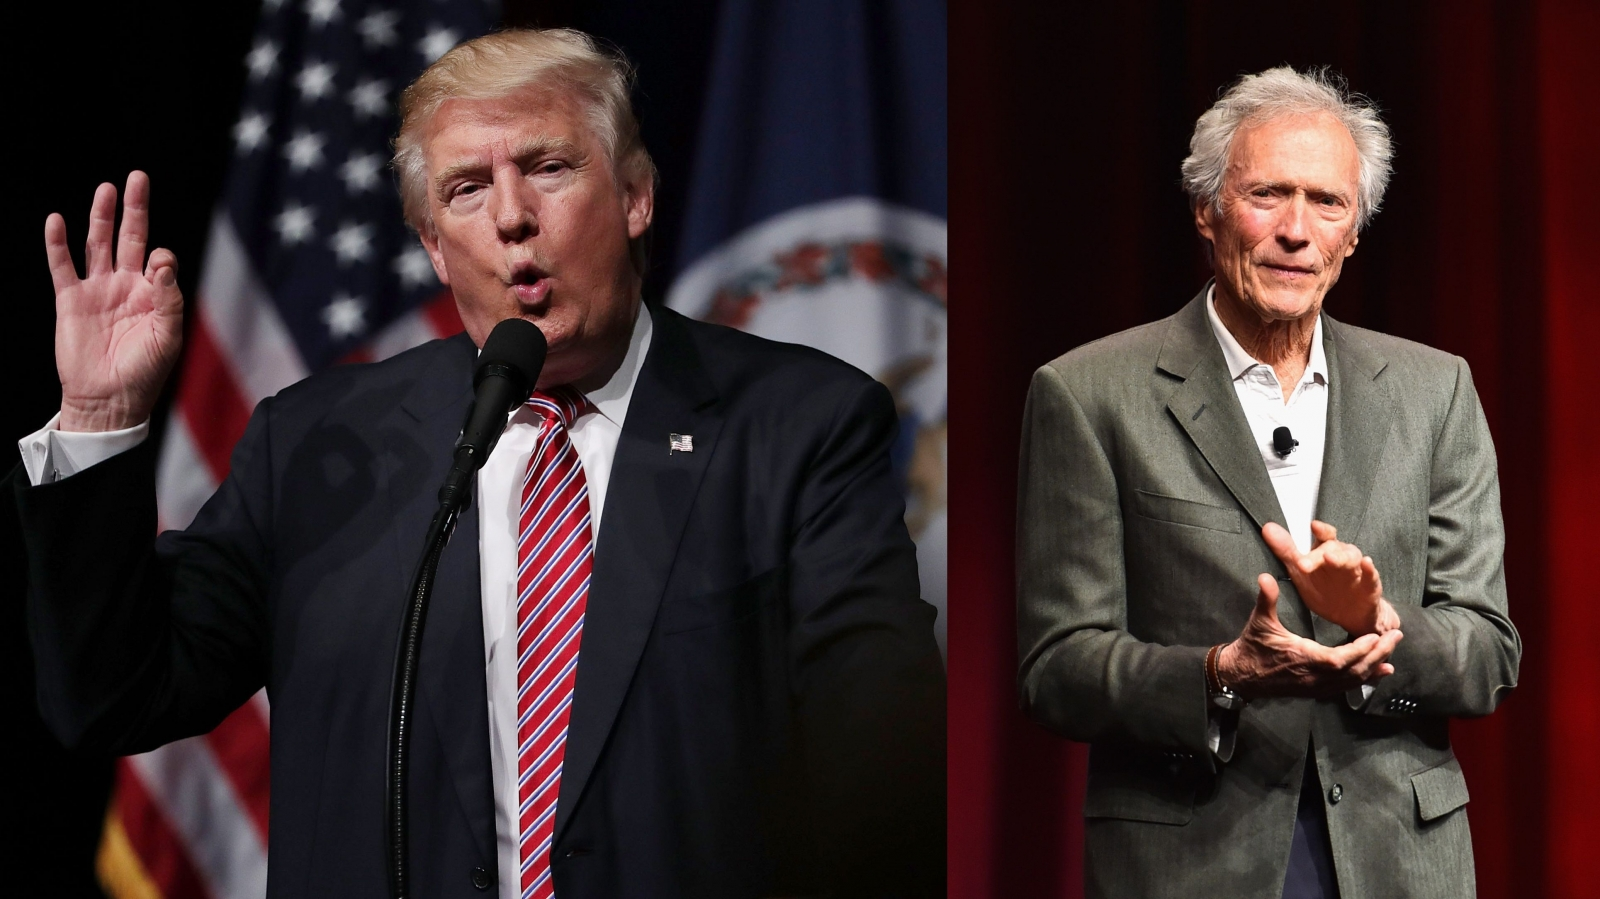 Donald Trump and Clint Eastwood